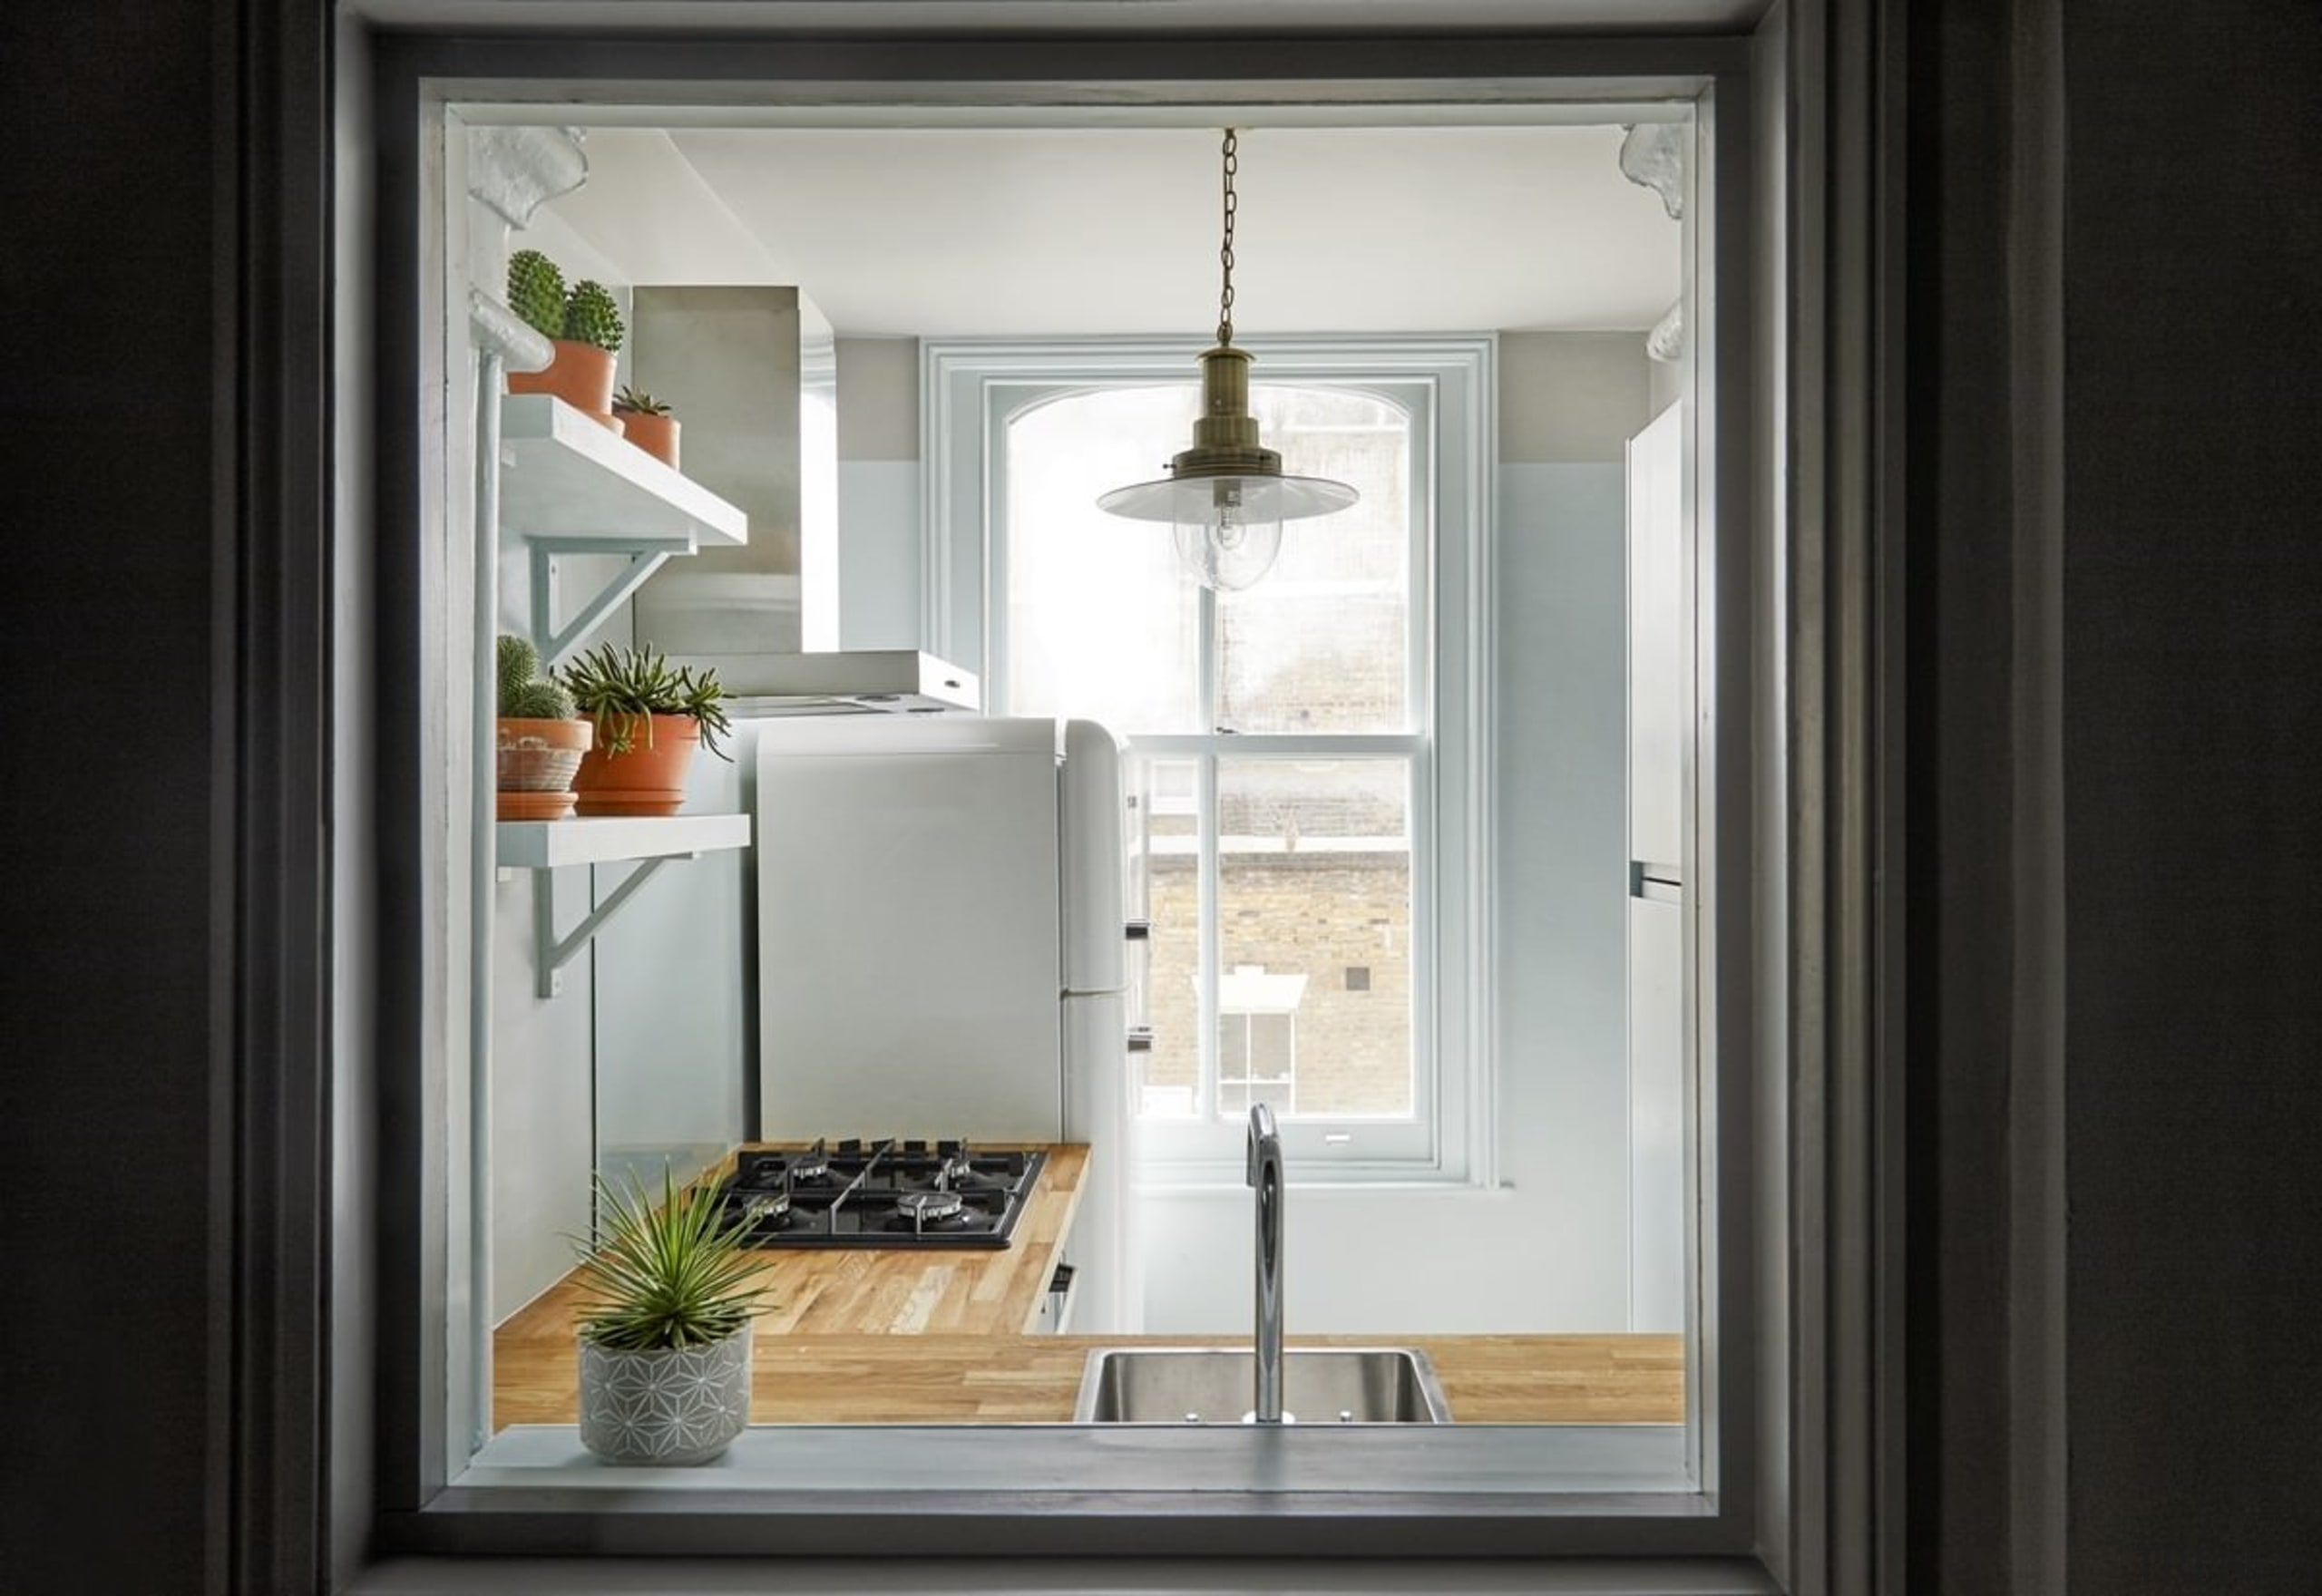 In the kitchen, a wood countertop creates a home, home appliance, interior design, window, black, gray